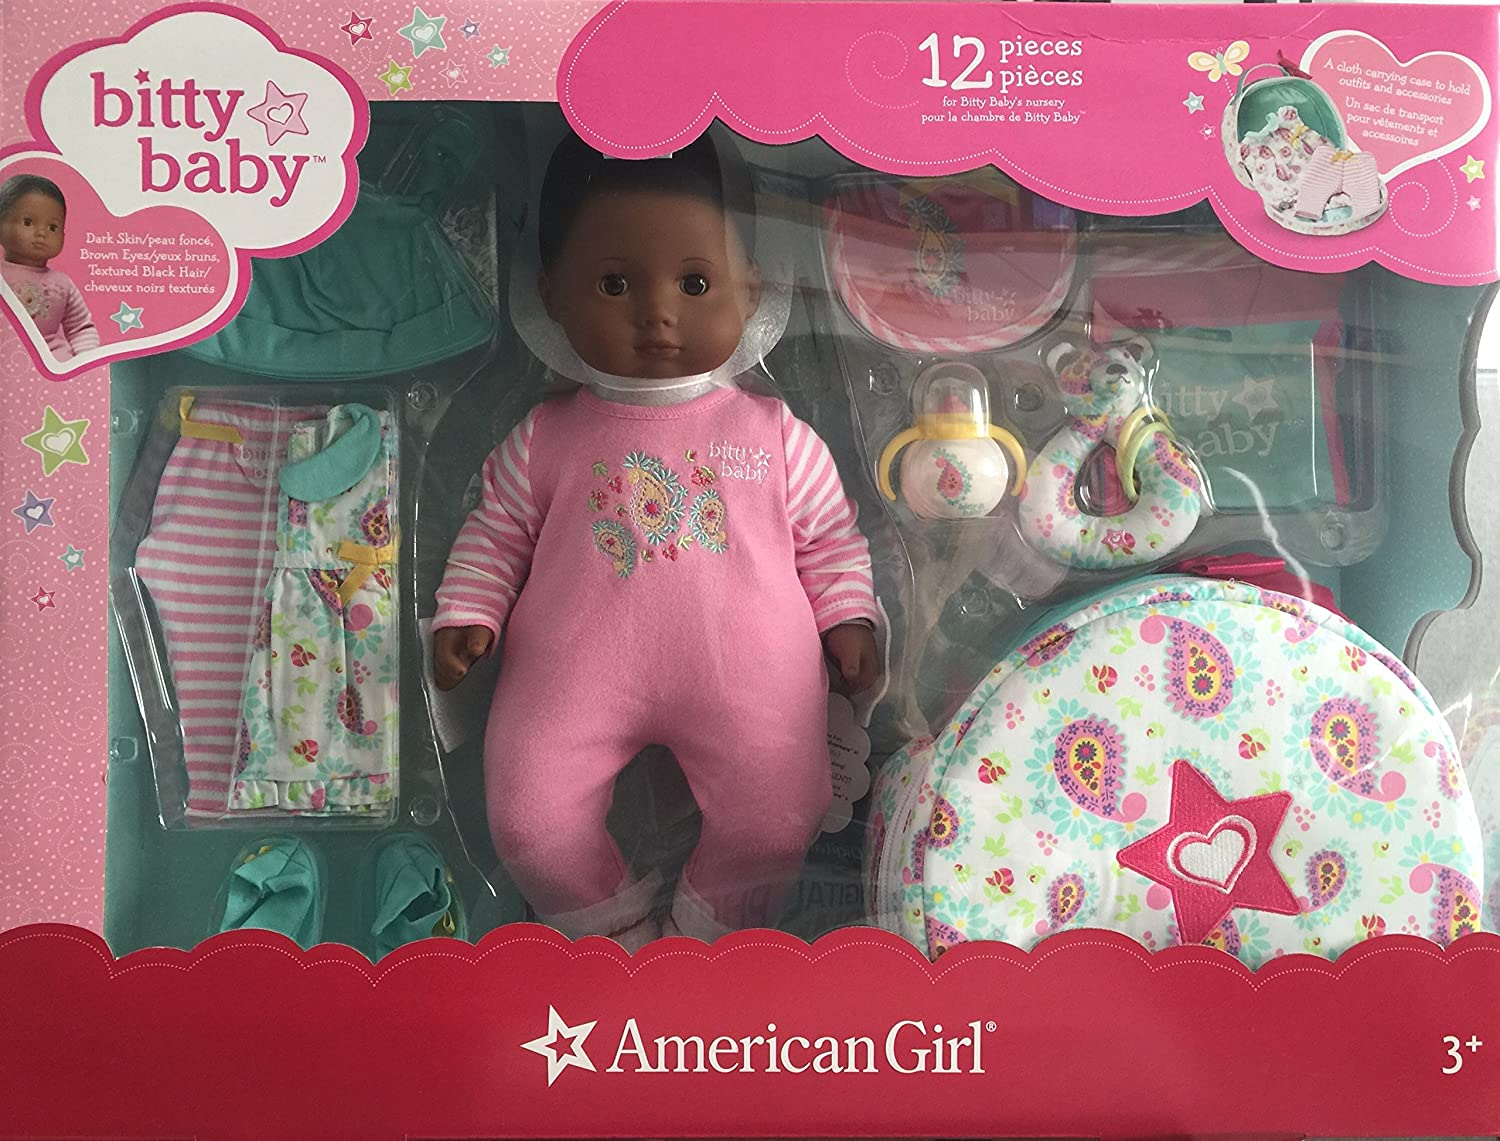 American Girl Bitty Baby Doll + Special Starter CollectionDark skin, black hair, brown eyes